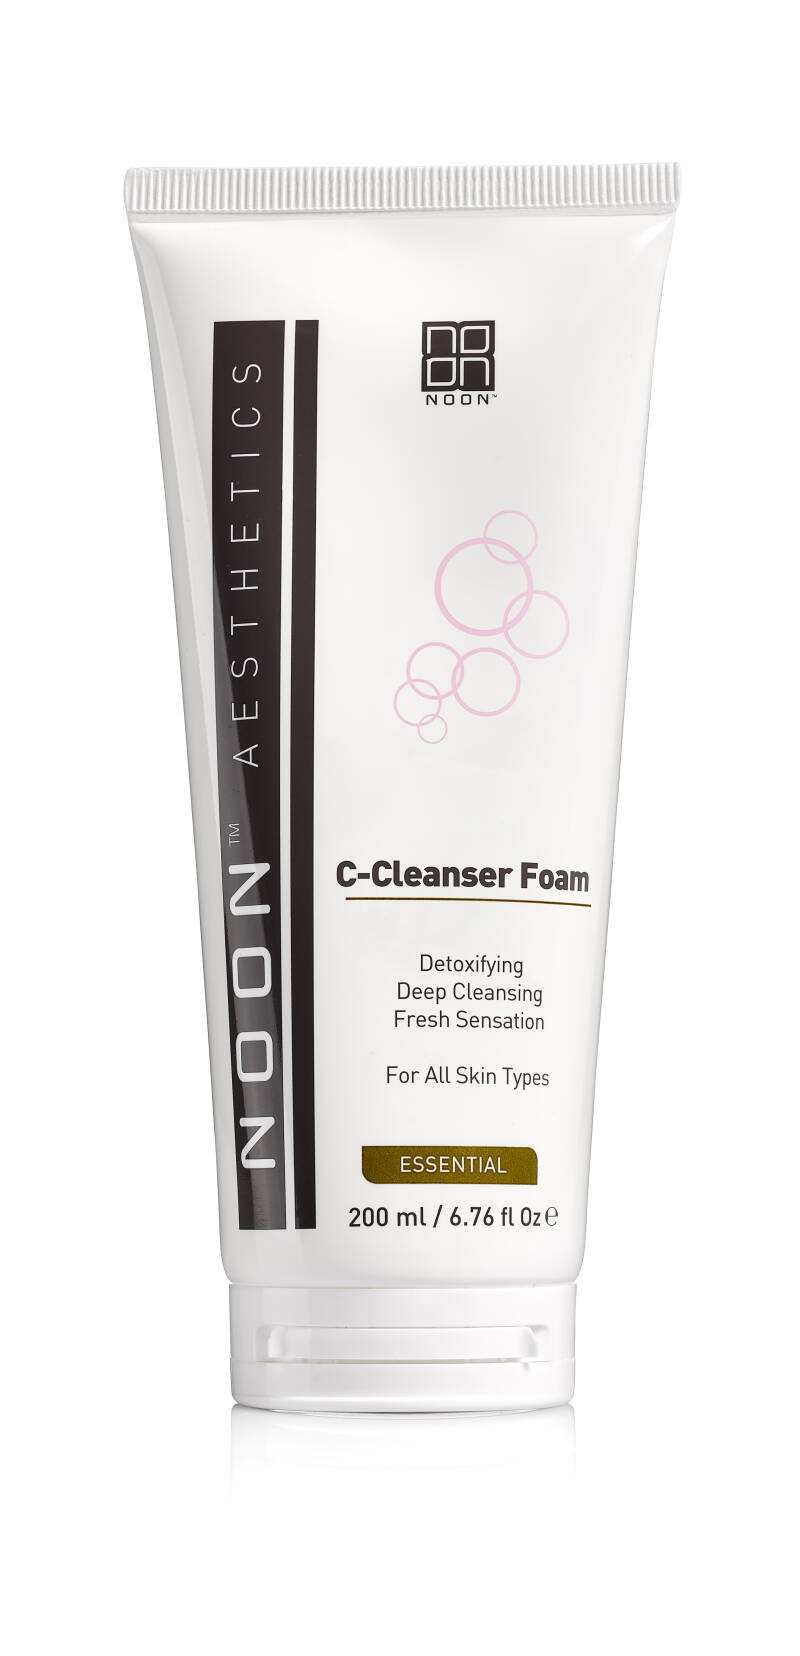 NOON C - Cleanser foam